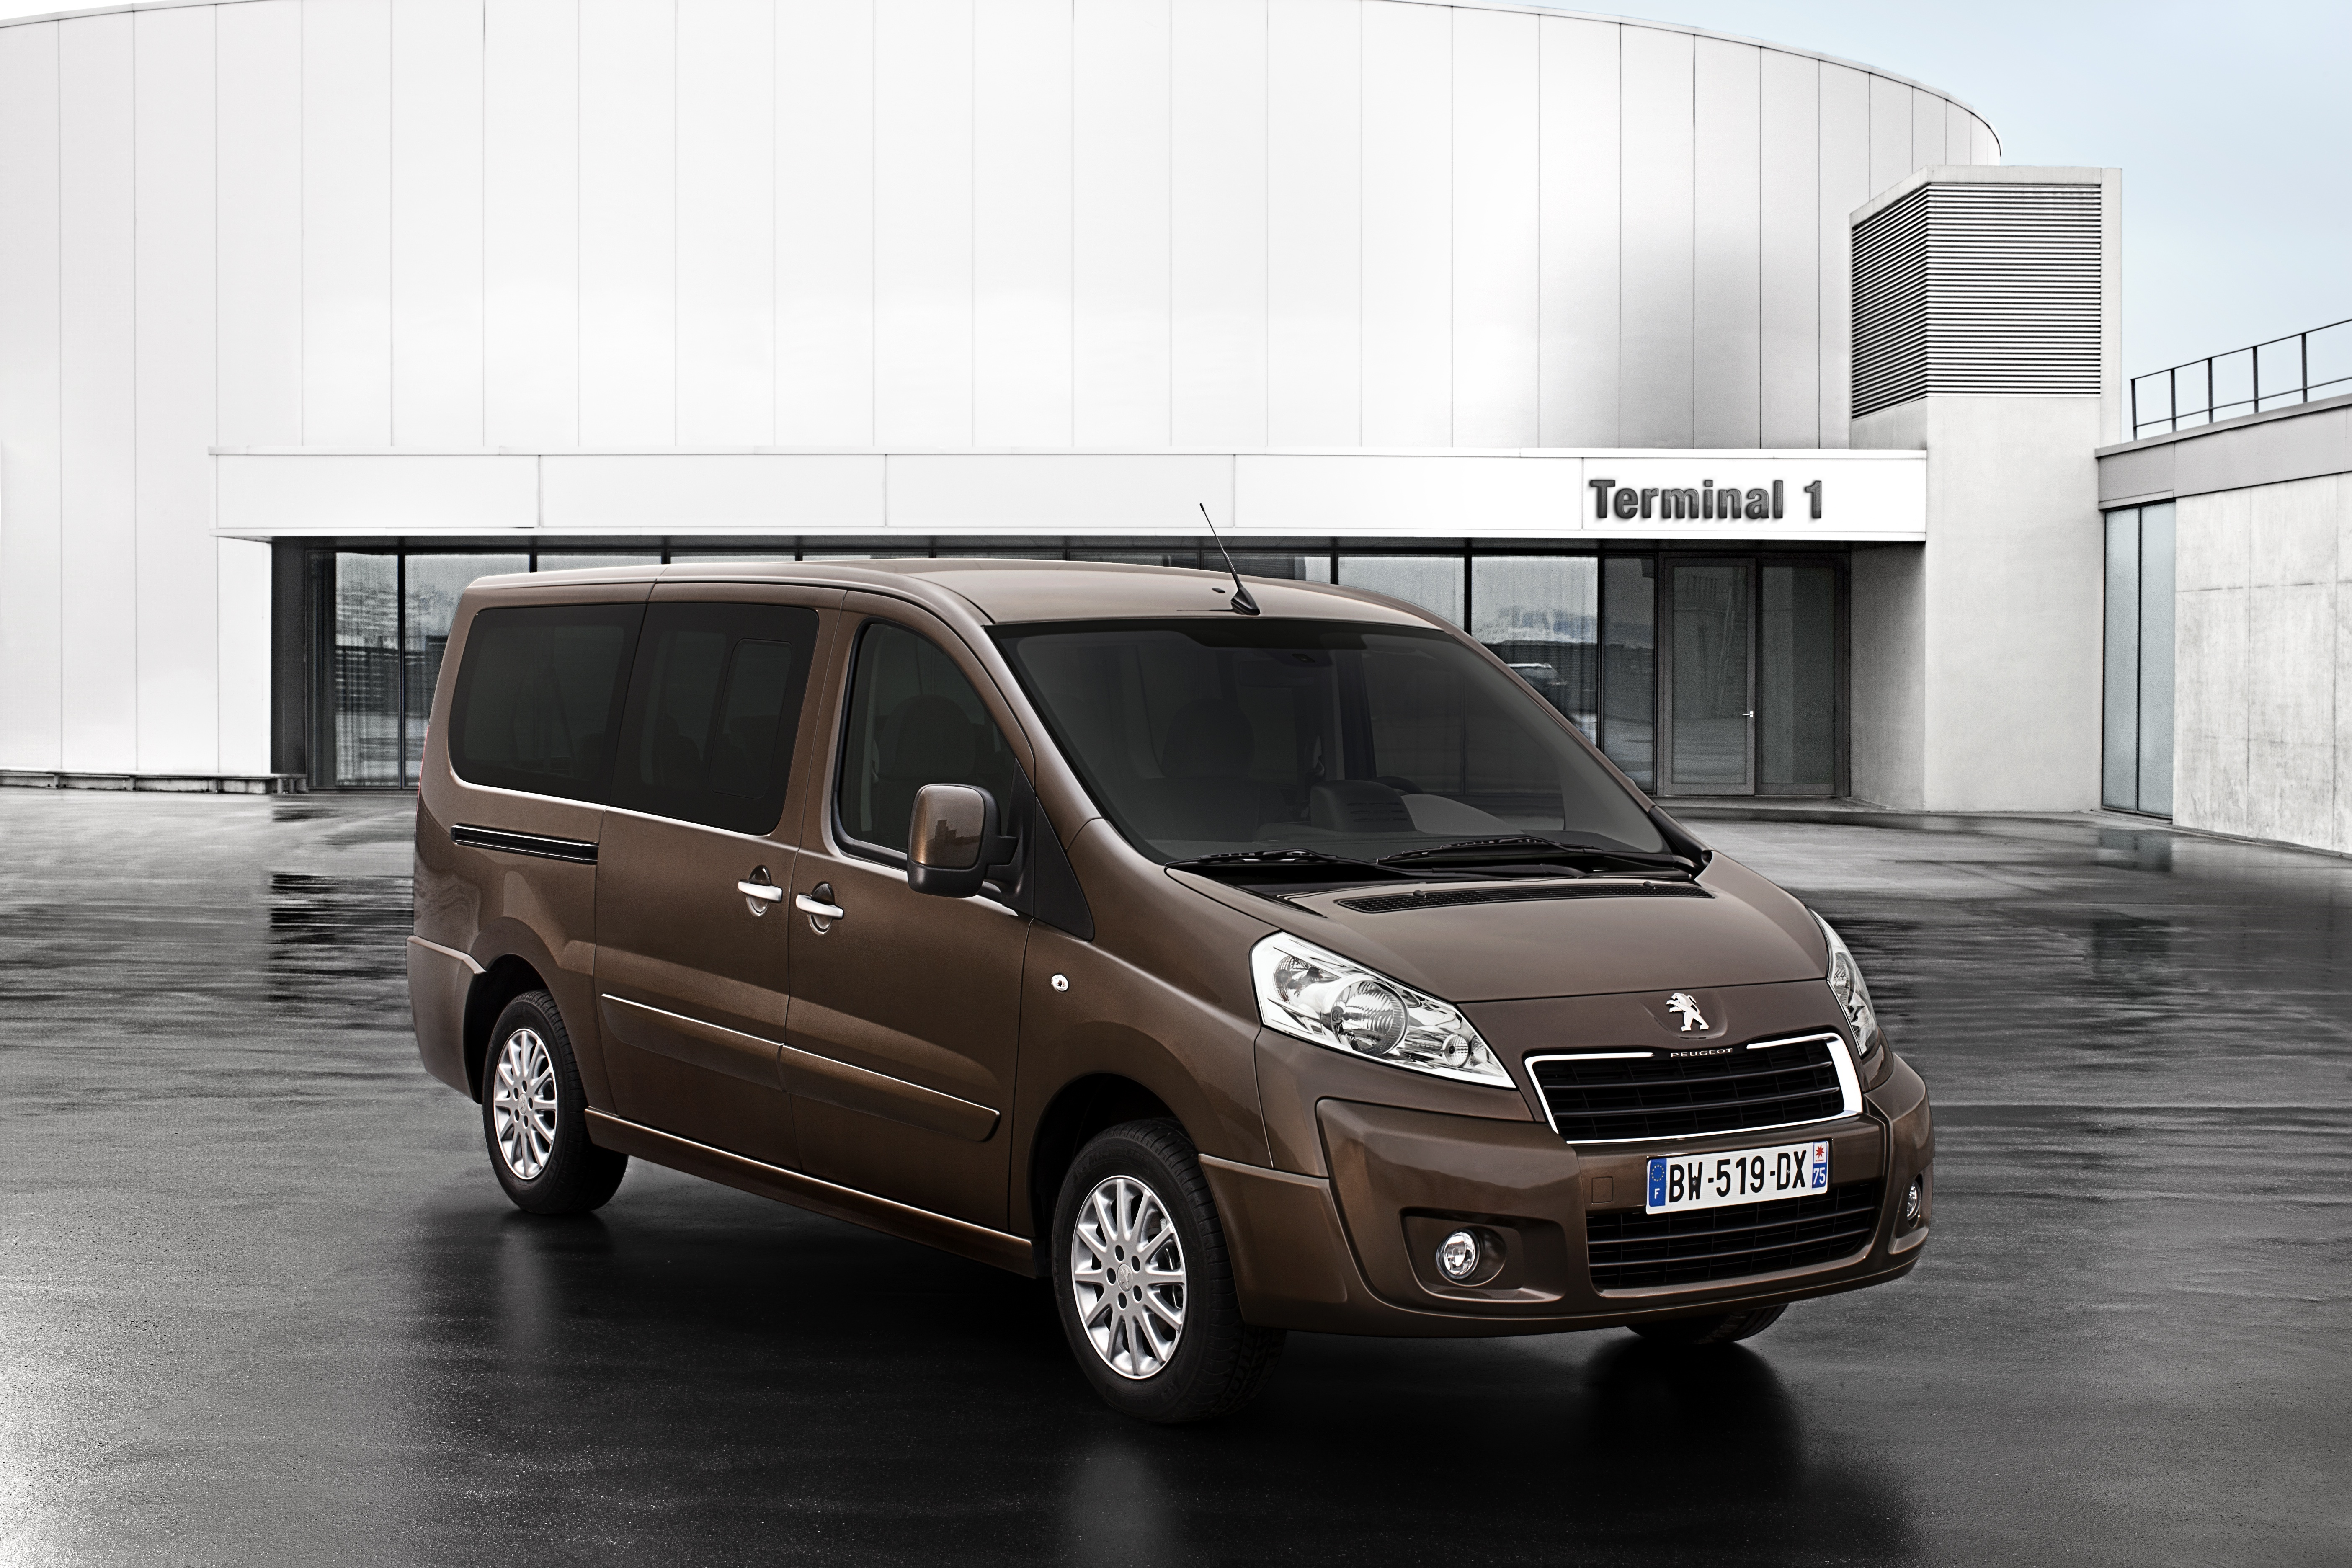 Peugeot Expert Fourgon accessories specifications